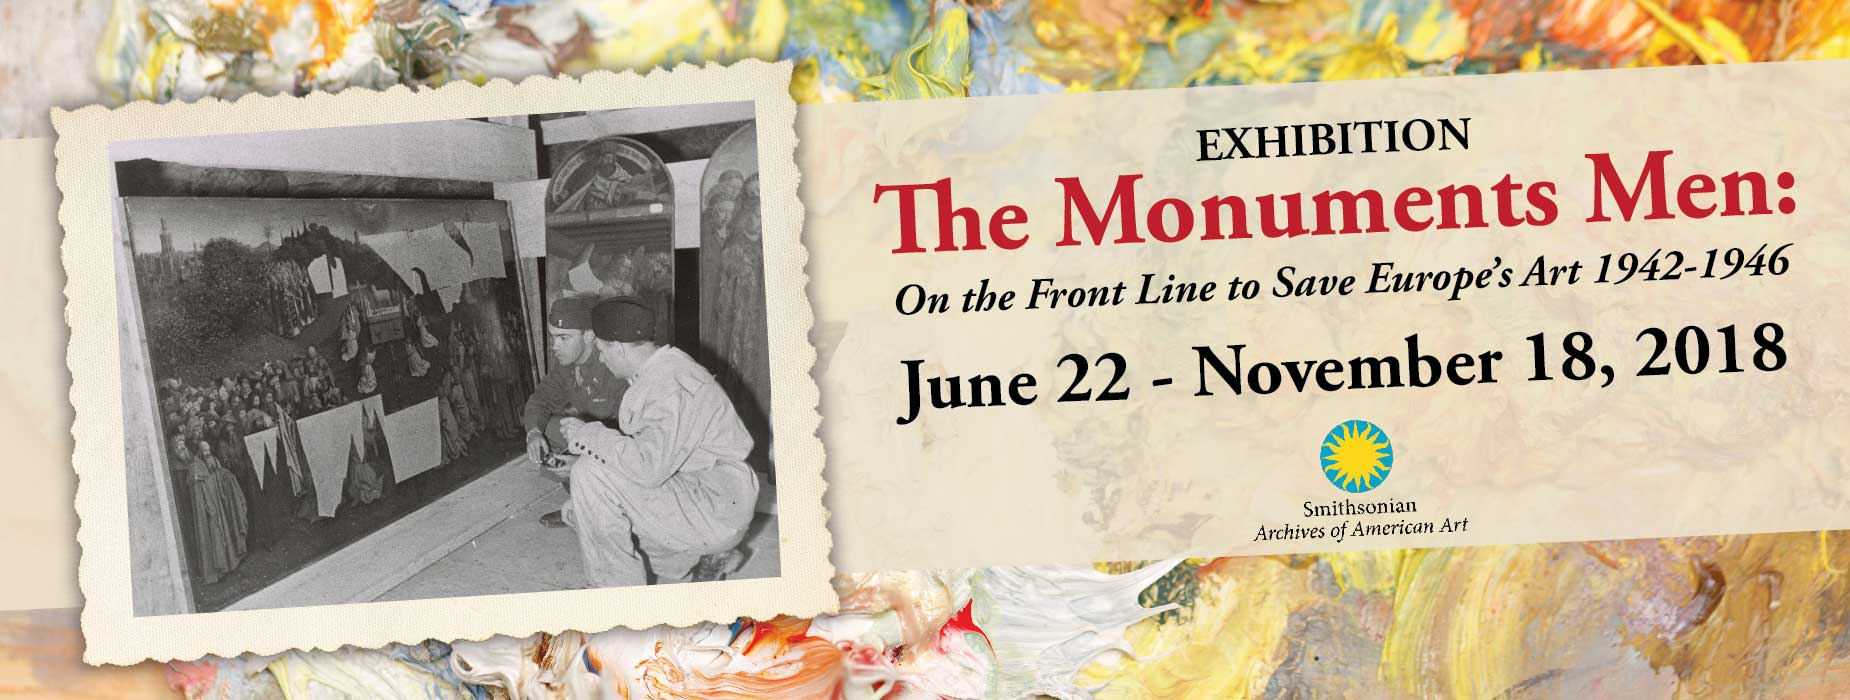 Poster for - Exhibition - The Monuments Men: On the Front Line to Save Europe's Art 1942-1946